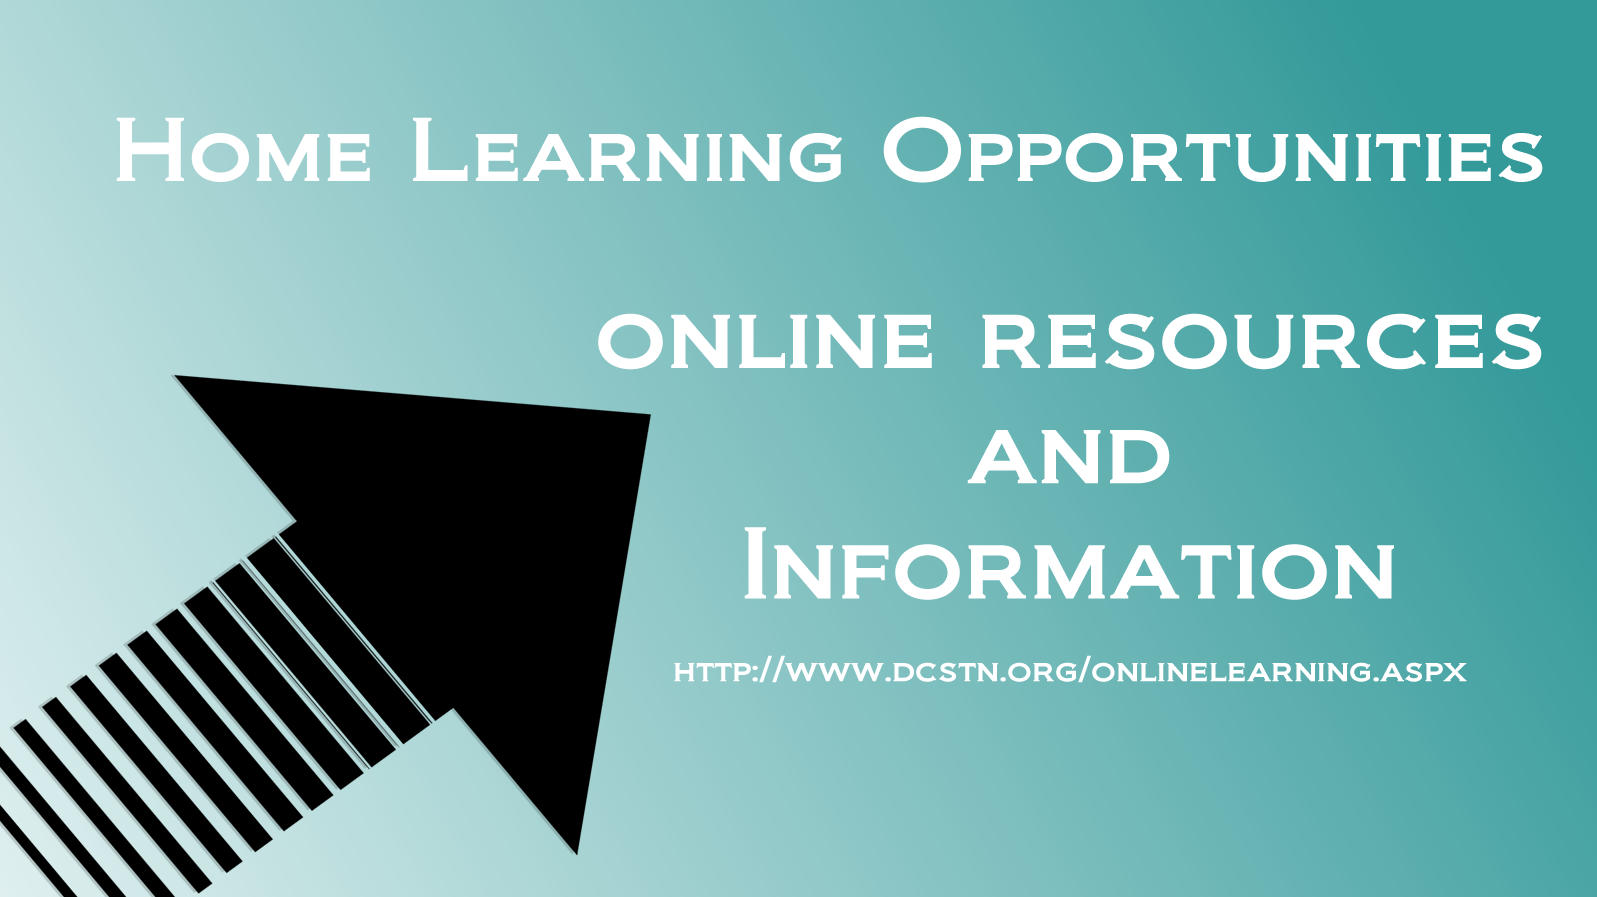 Home Learning Opportunities